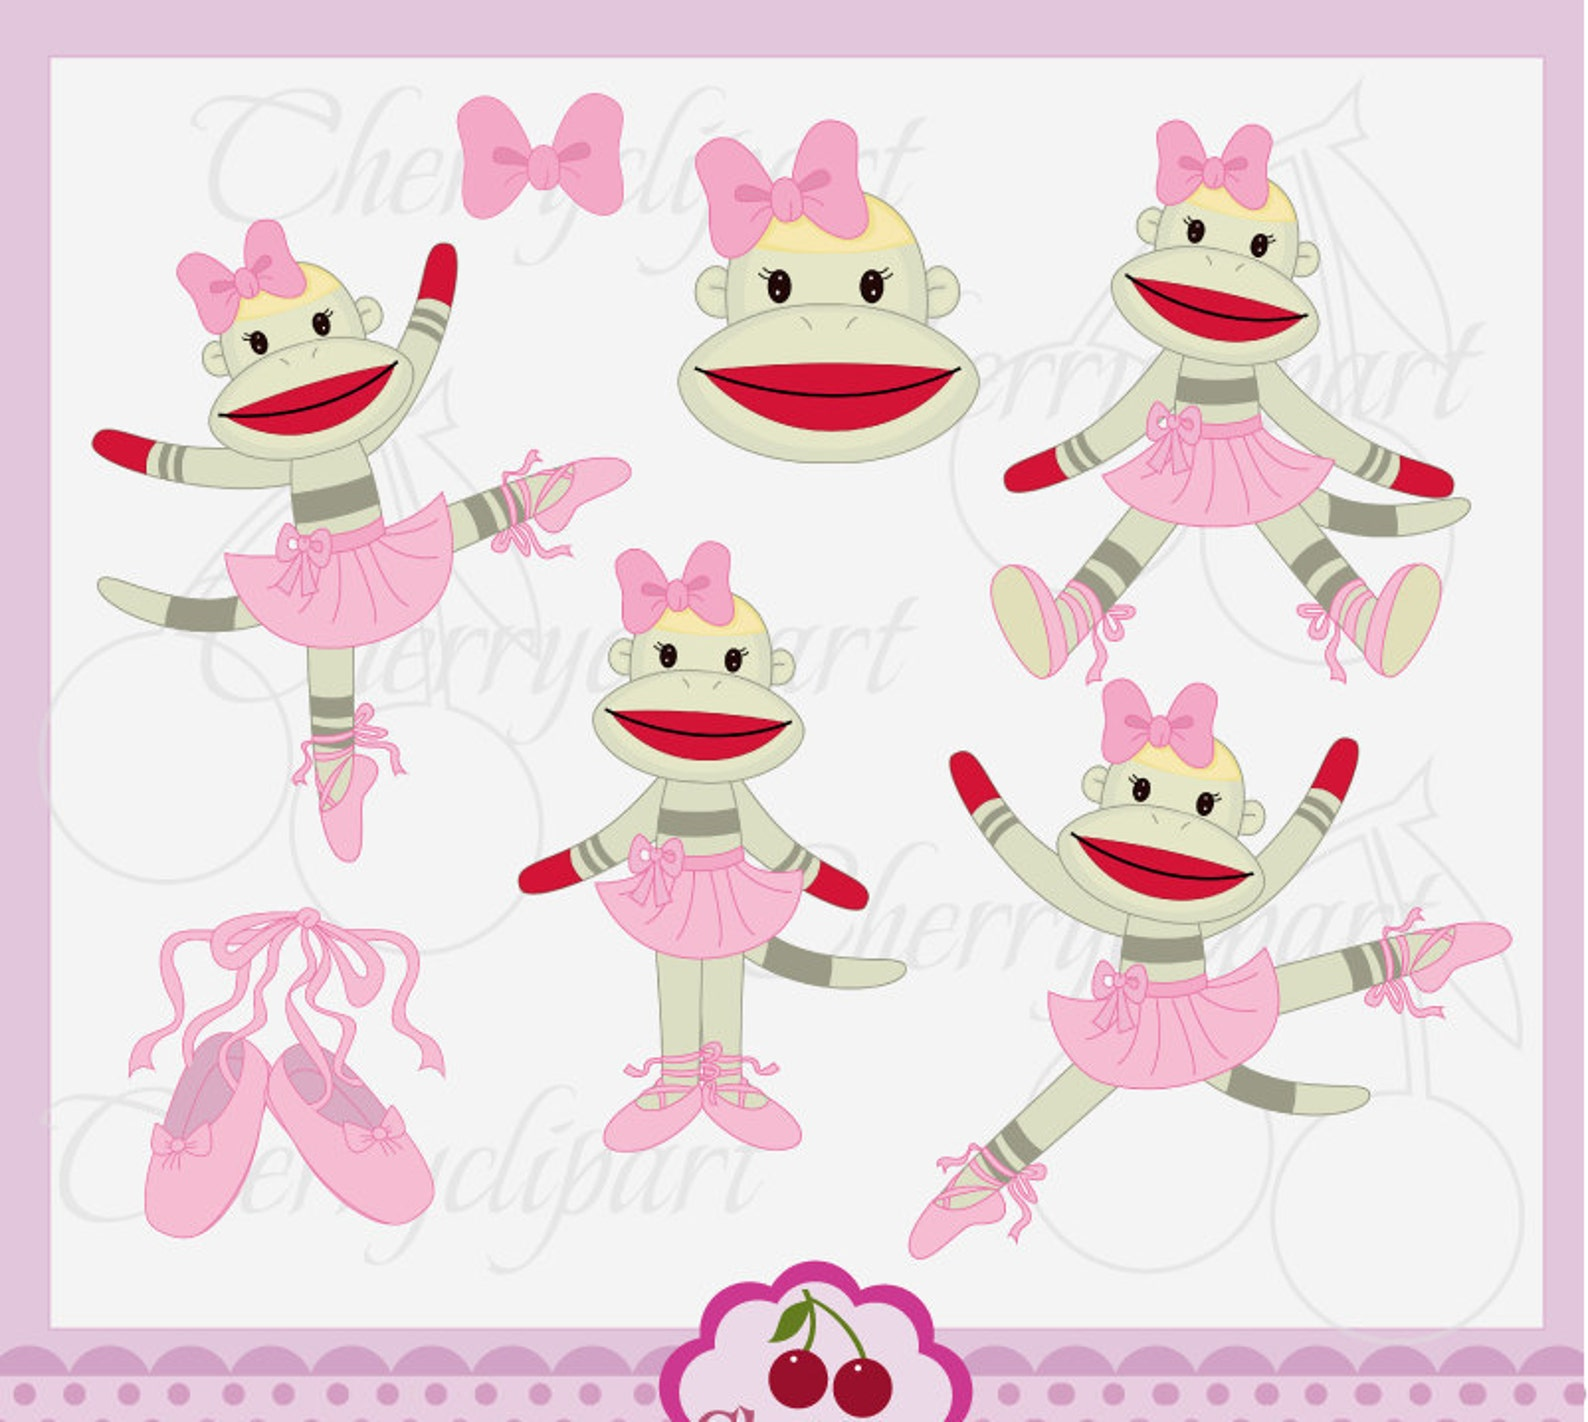 ballerina sock monkeys set,little ballet dancer,cute sock monkeys digital clipart an054 -for personal and commercial use